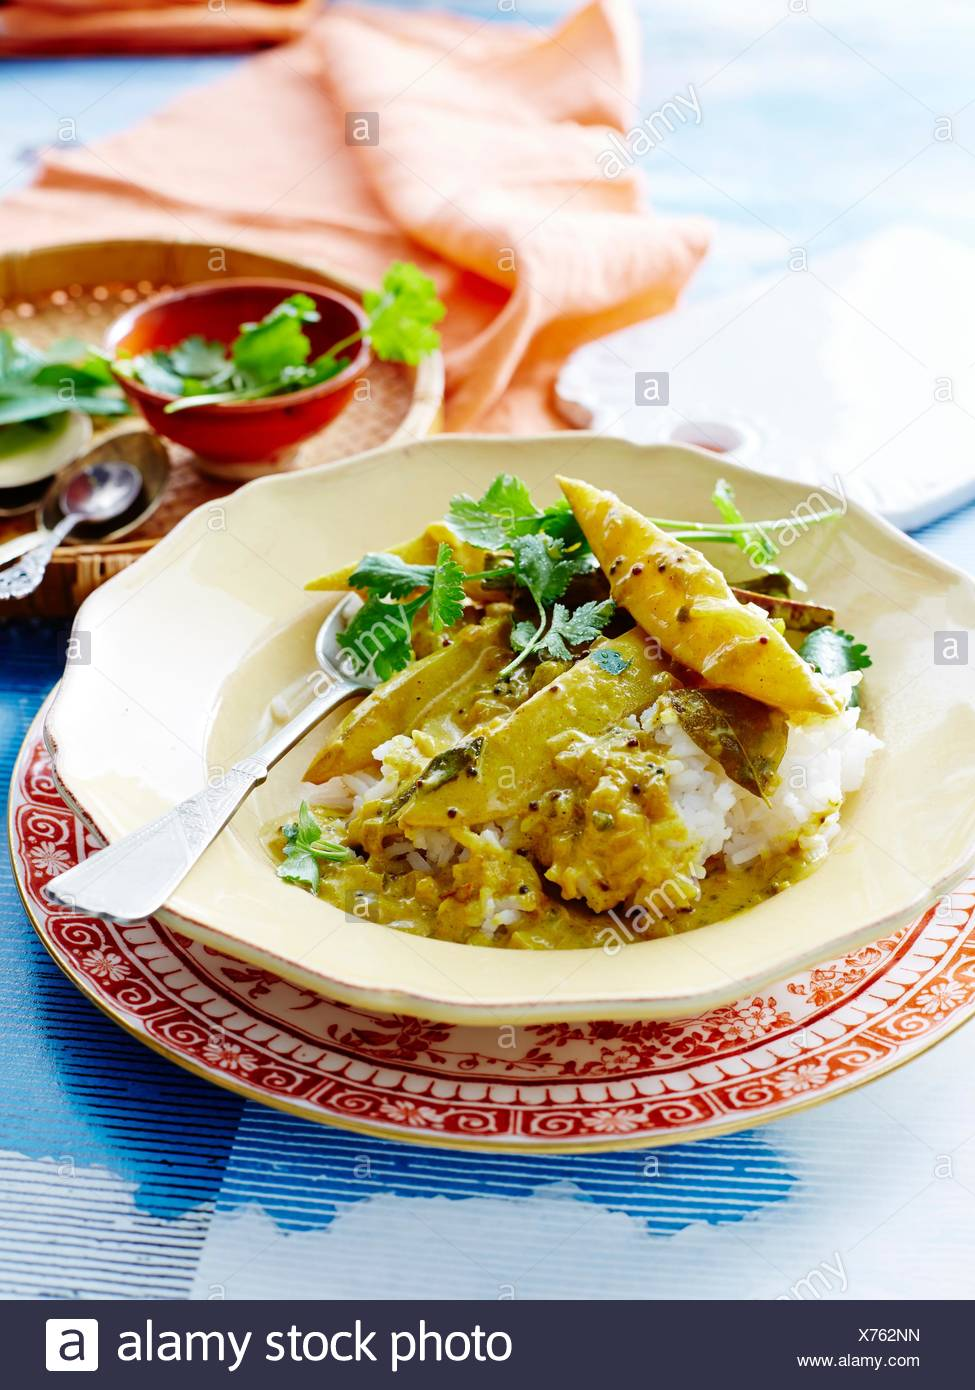 High angle view of Sri Lankan mango curry and rice garnished with coriander - Stock Image